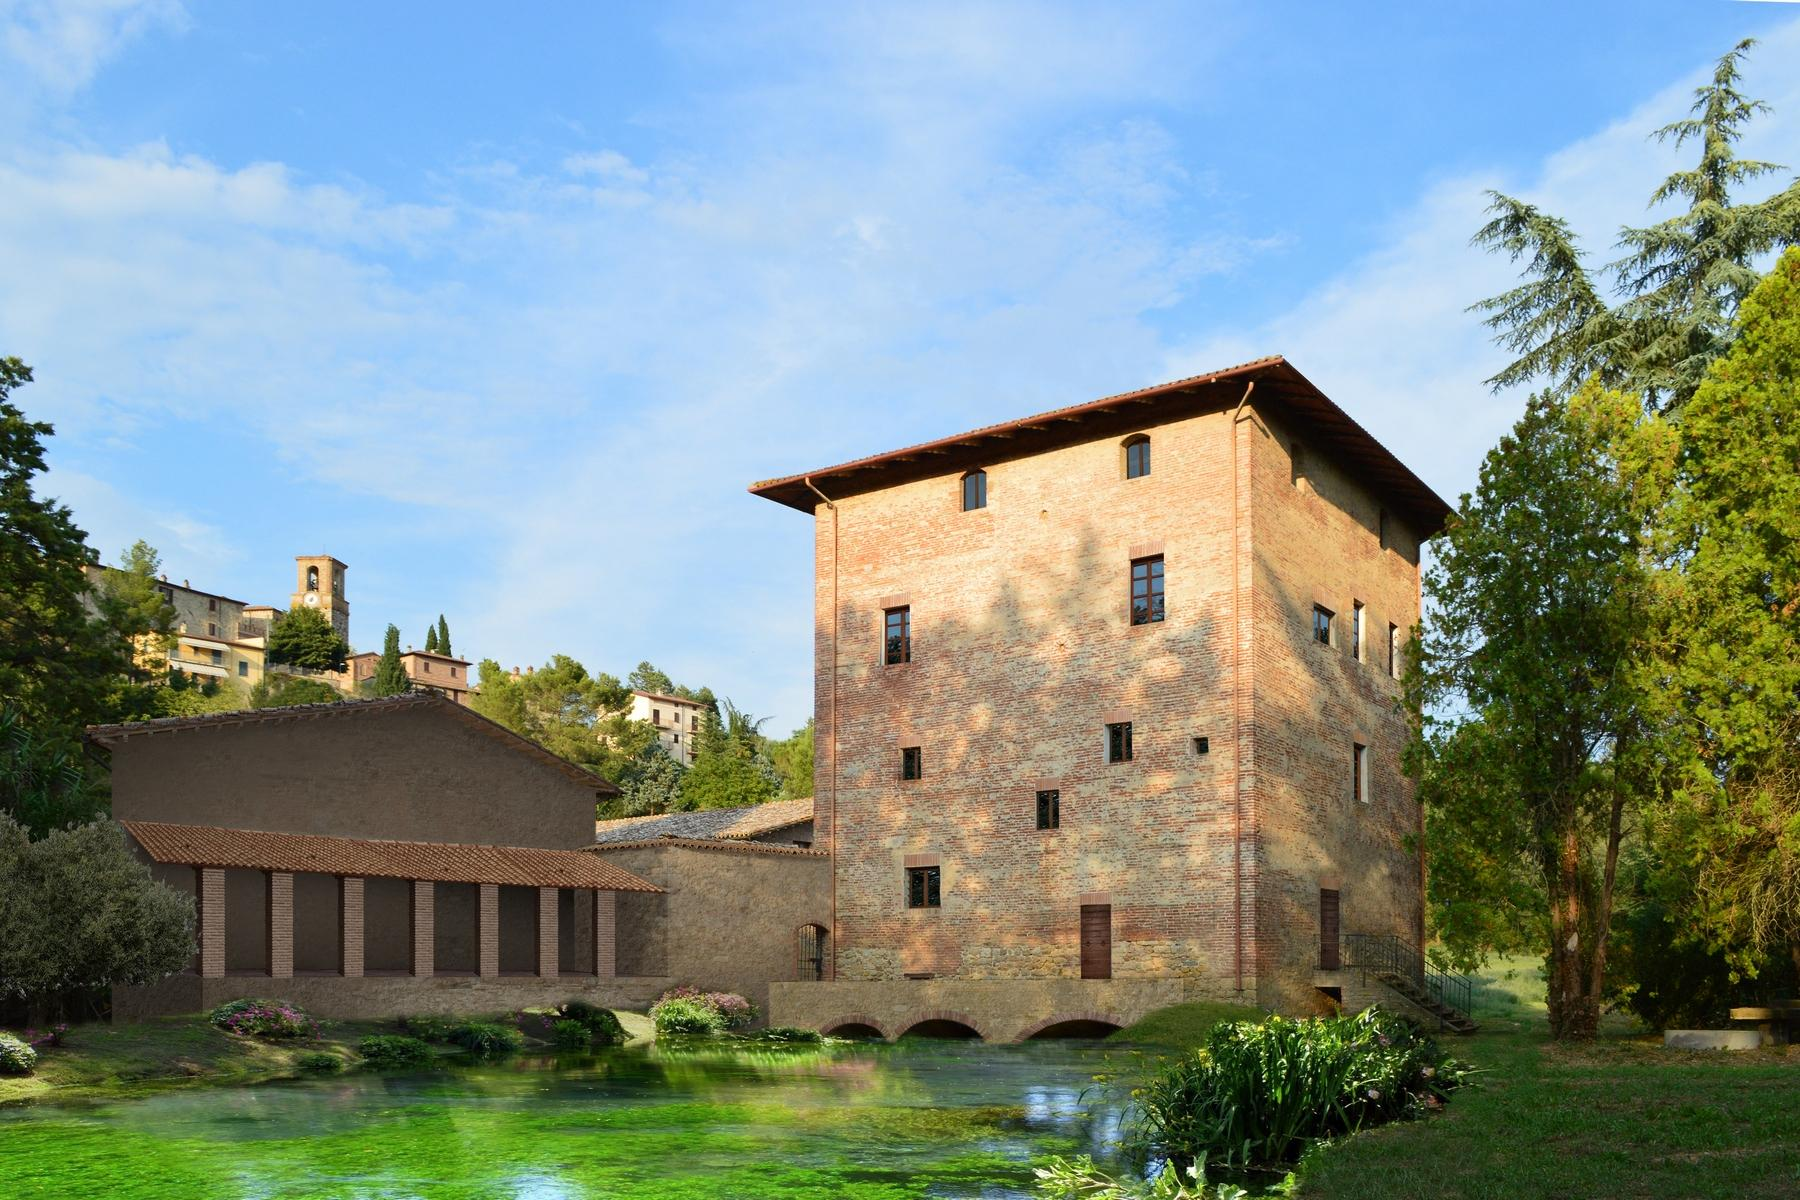 Majestic 15th century mill to be restored - 10